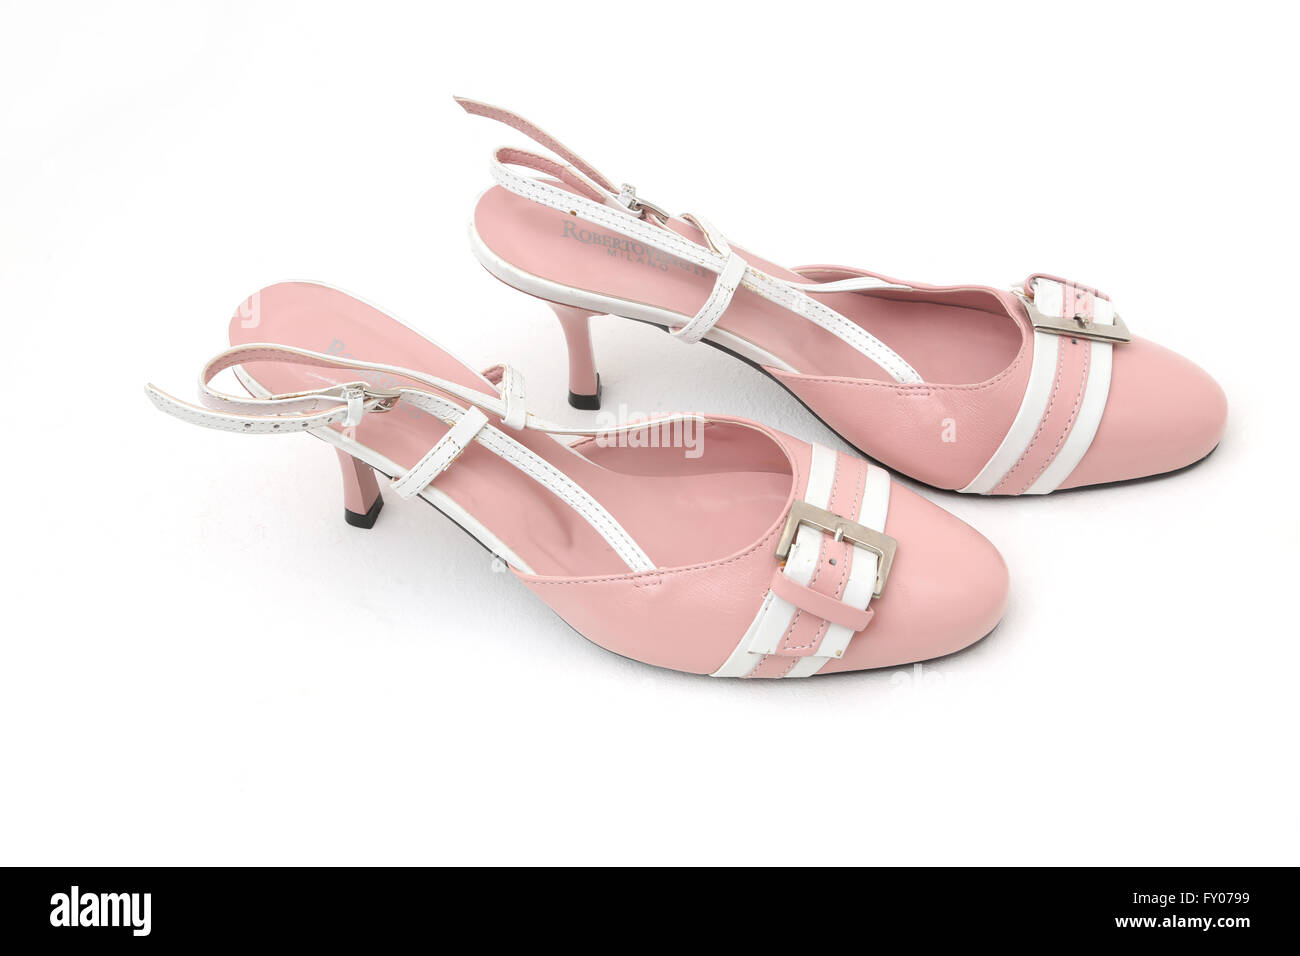 Roberto Venutt Italian Leather Pink And White Kitten Heel Shoes With Buckle - Stock Image